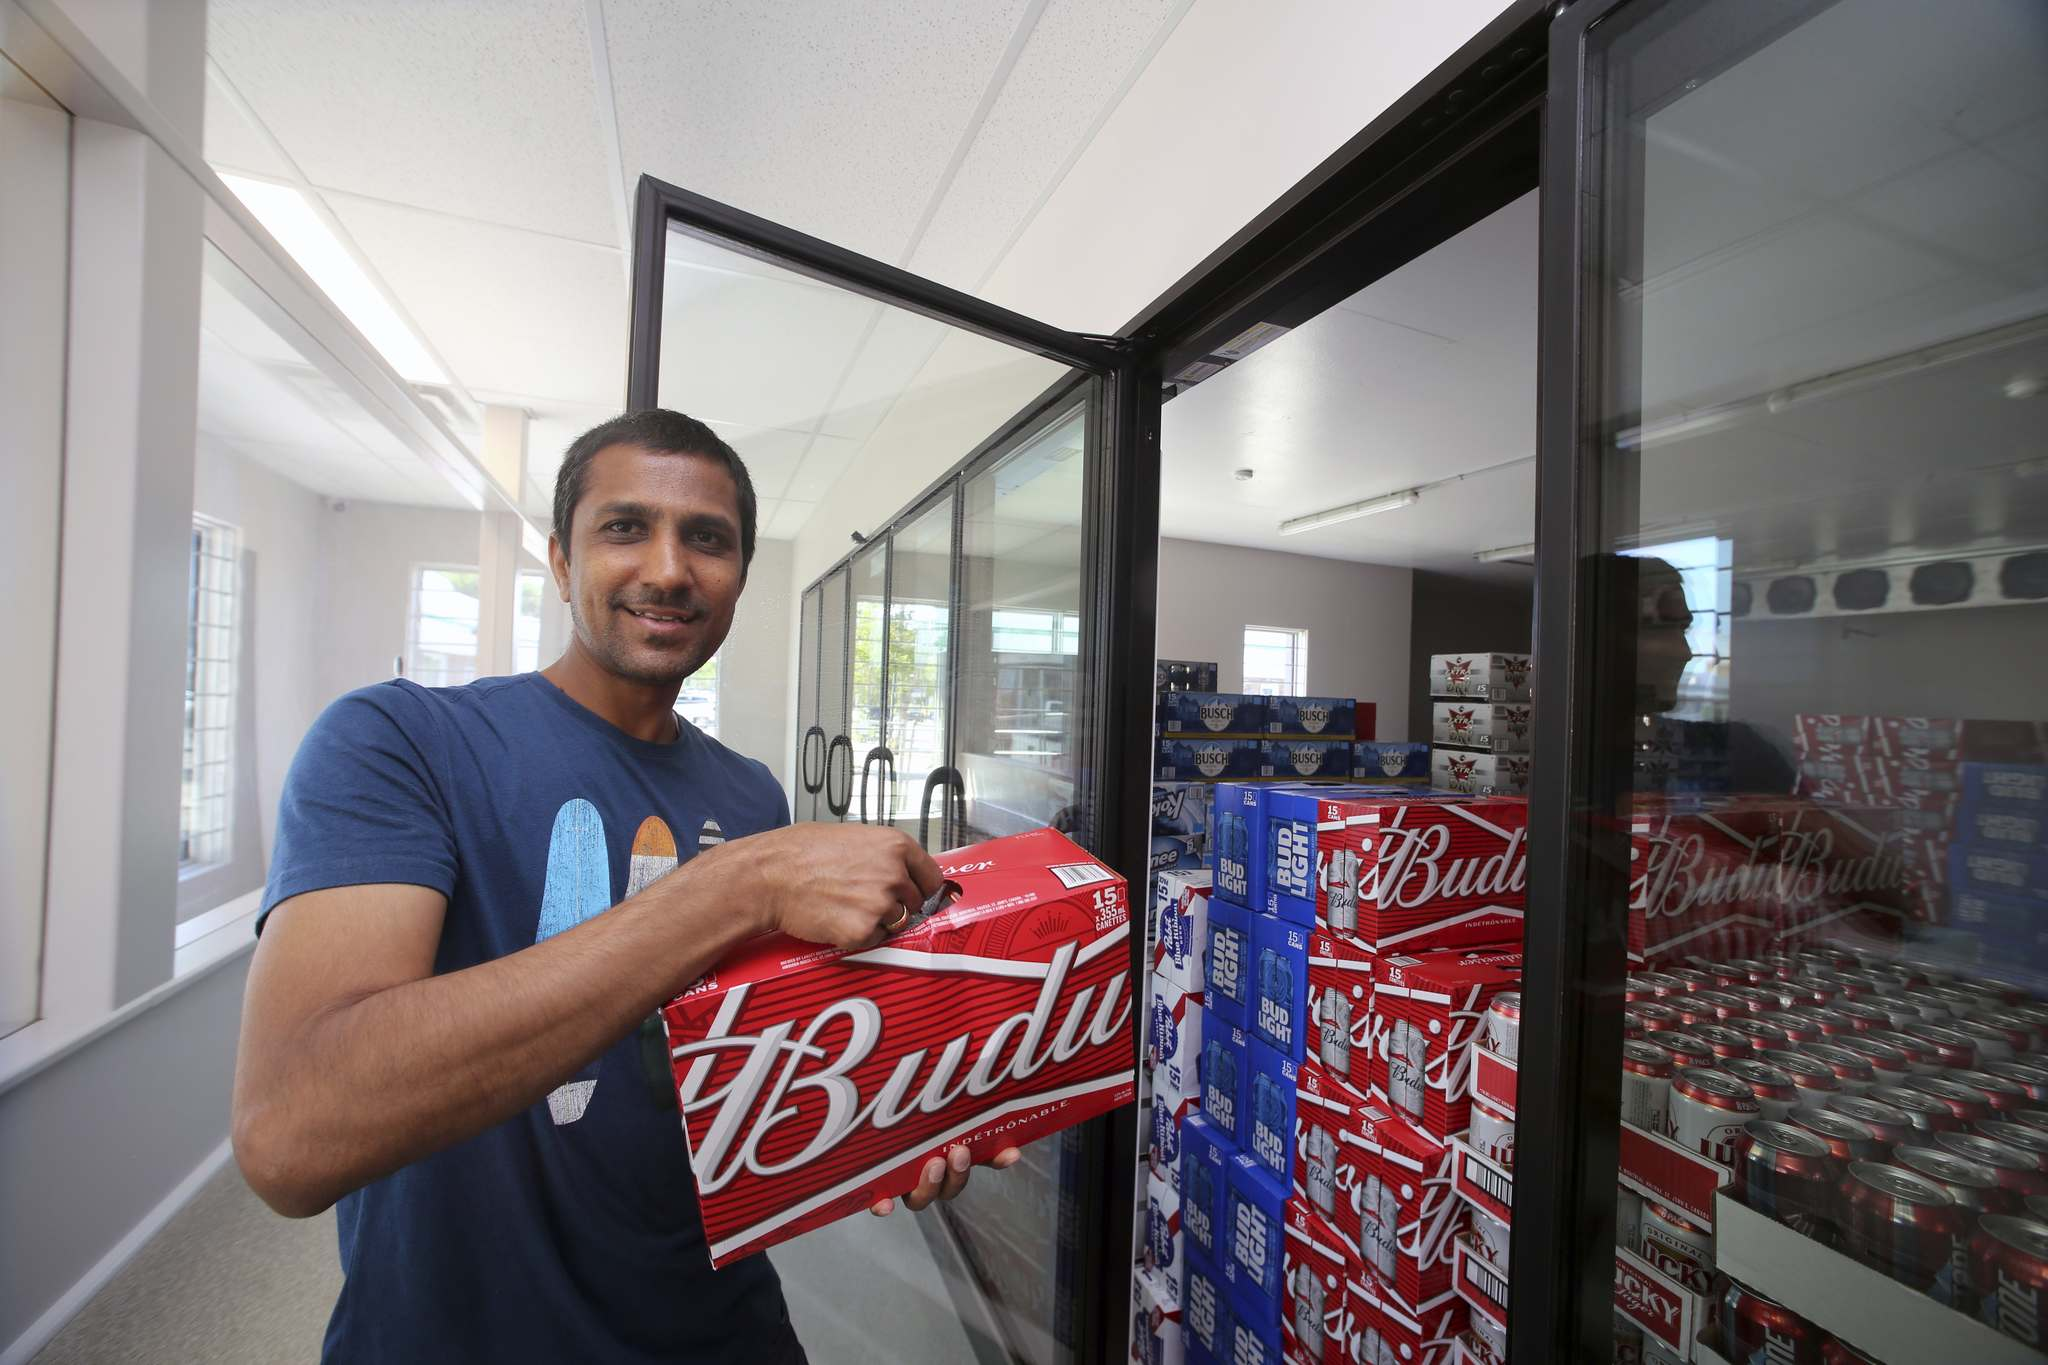 Manager Hamul Patel shows off the cooler in the rebuilt Empire Inn cold beer store on Rosser Avenue. The original beer vendor burned down in the May 2018 downtown fire. (Colin Slark/The Brandon Sun)</p></p>